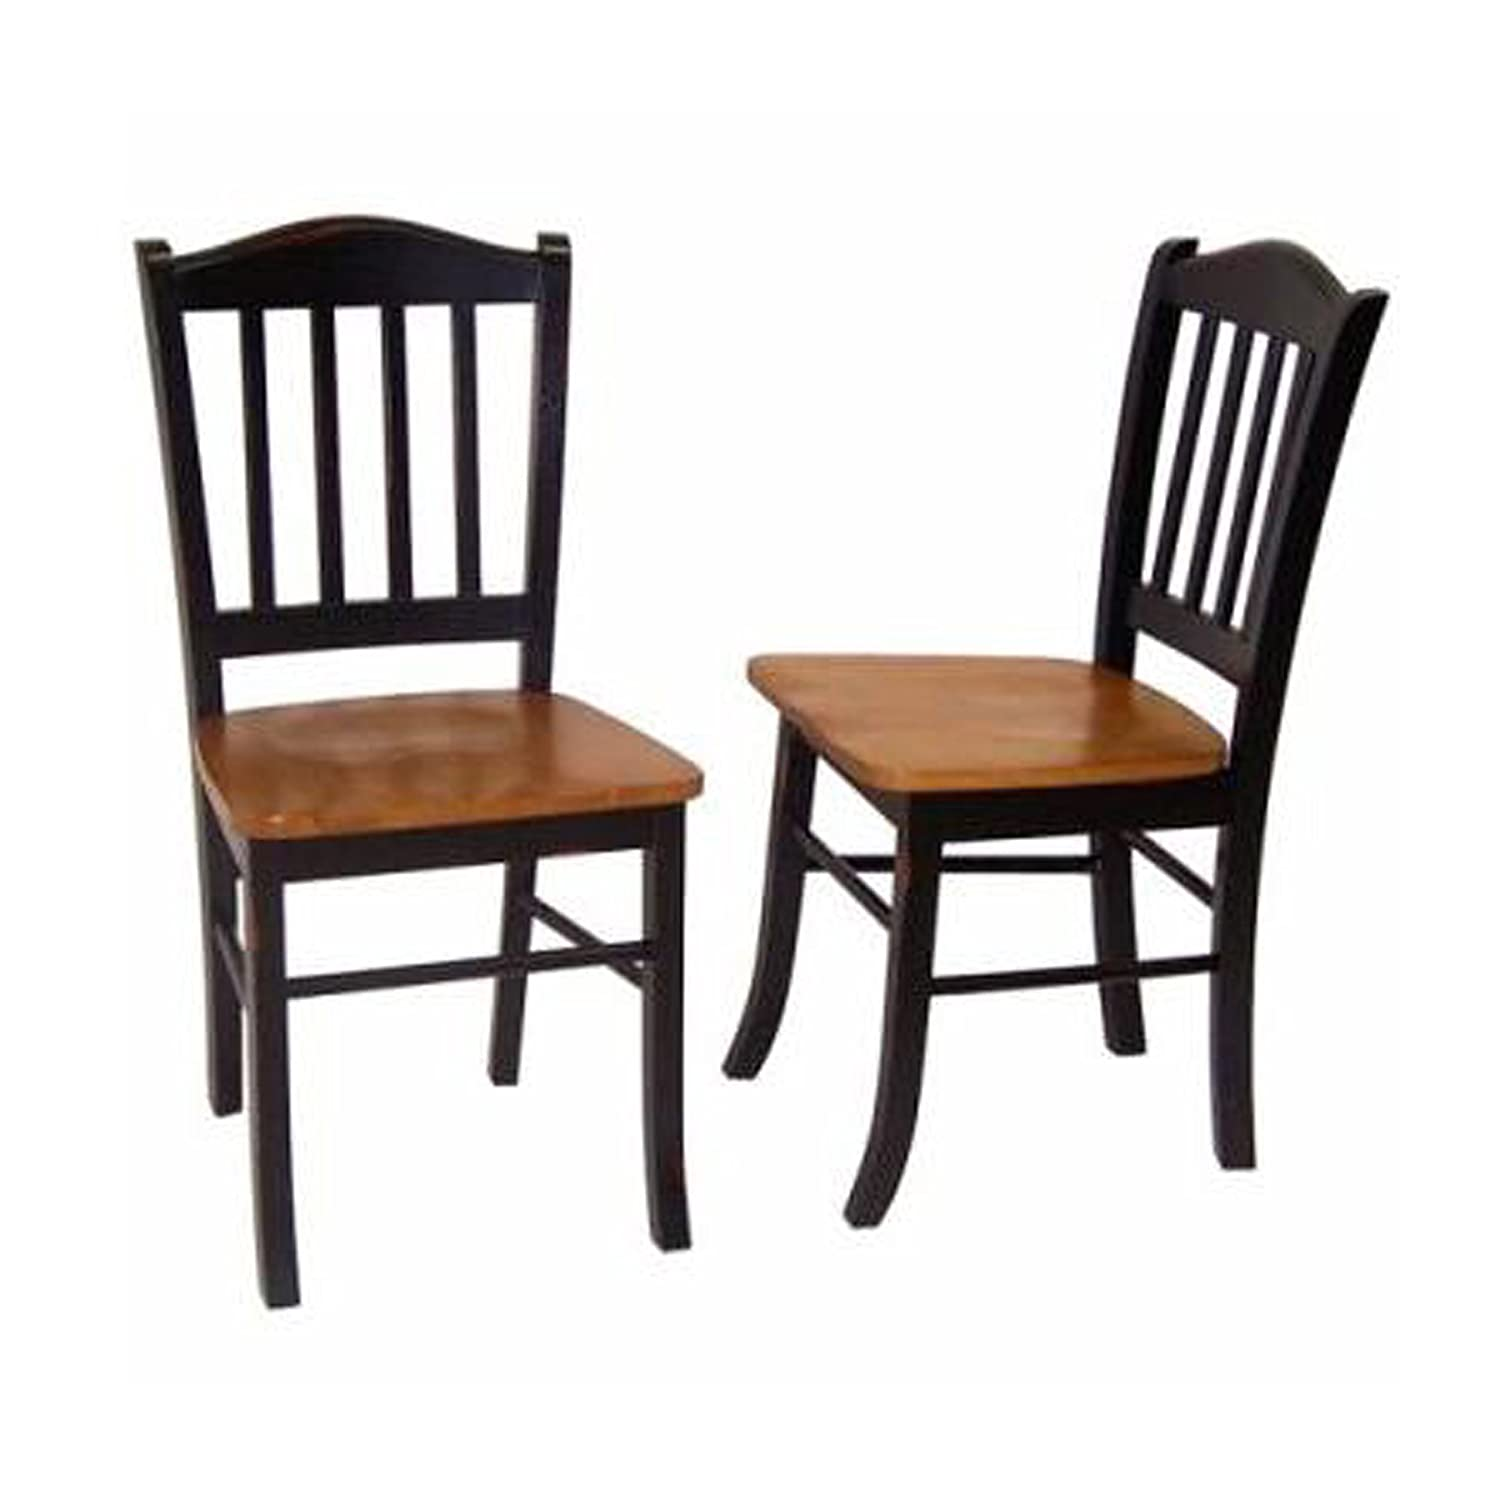 Amazon.com Boraam 30536 Shaker Chair Black/Oak Set of 2 Kitchen u0026 Dining  sc 1 st  Amazon.com & Amazon.com: Boraam 30536 Shaker Chair Black/Oak Set of 2: Kitchen ...